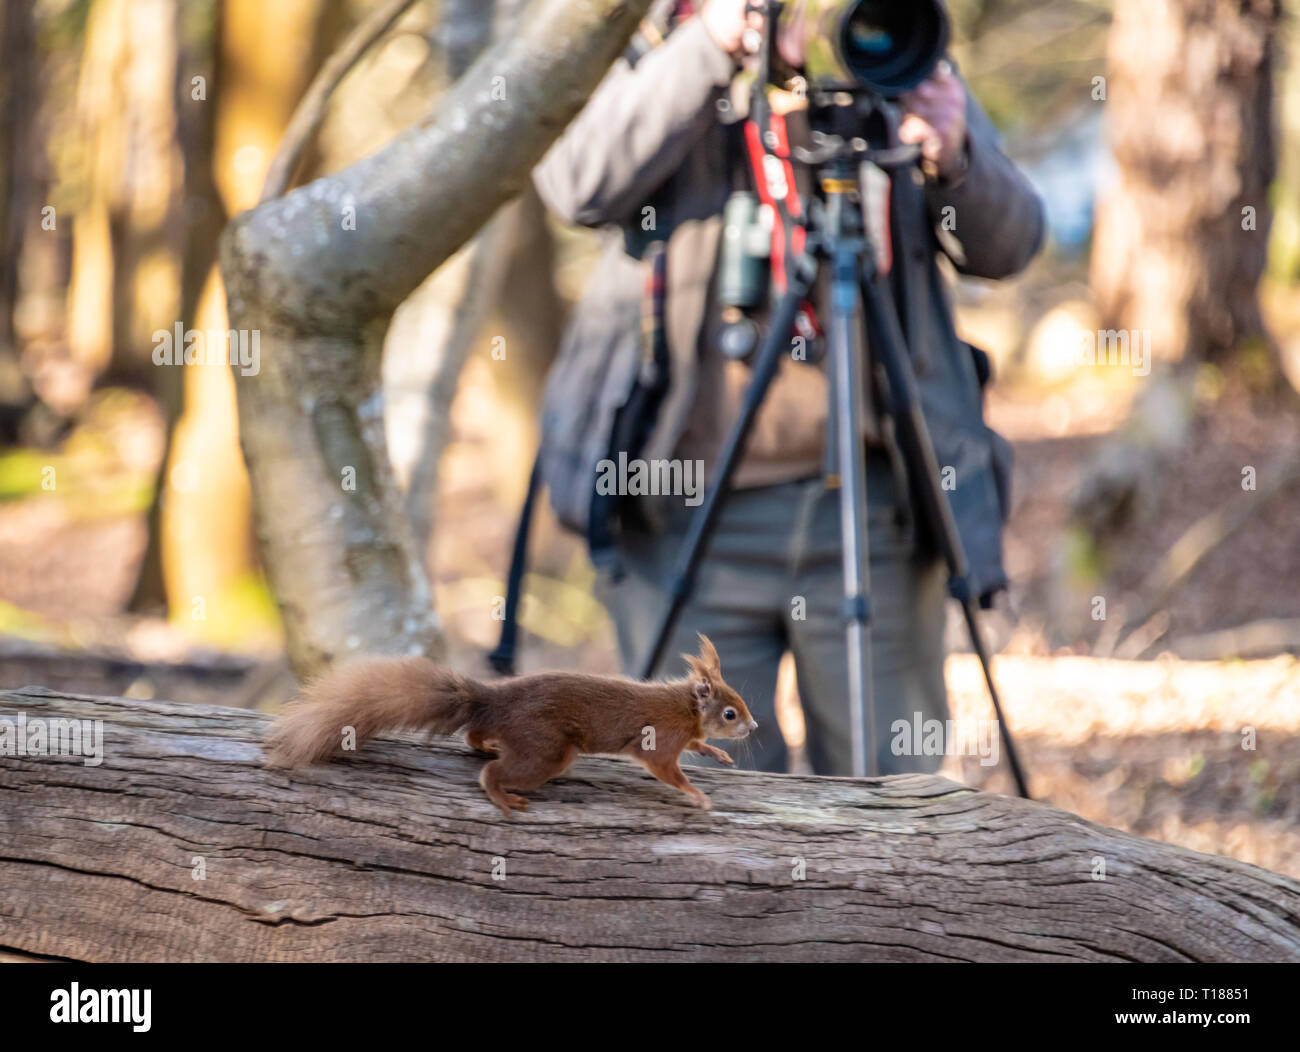 Poole, Dorset. 24th March 2019. Keen photographers try to capture pictures of young red squirrels on Brownsea Island in Poole. One of the few places native Red Squirrels can be found in the wild. Credit: Thomas Faull/Alamy Live News Stock Photo